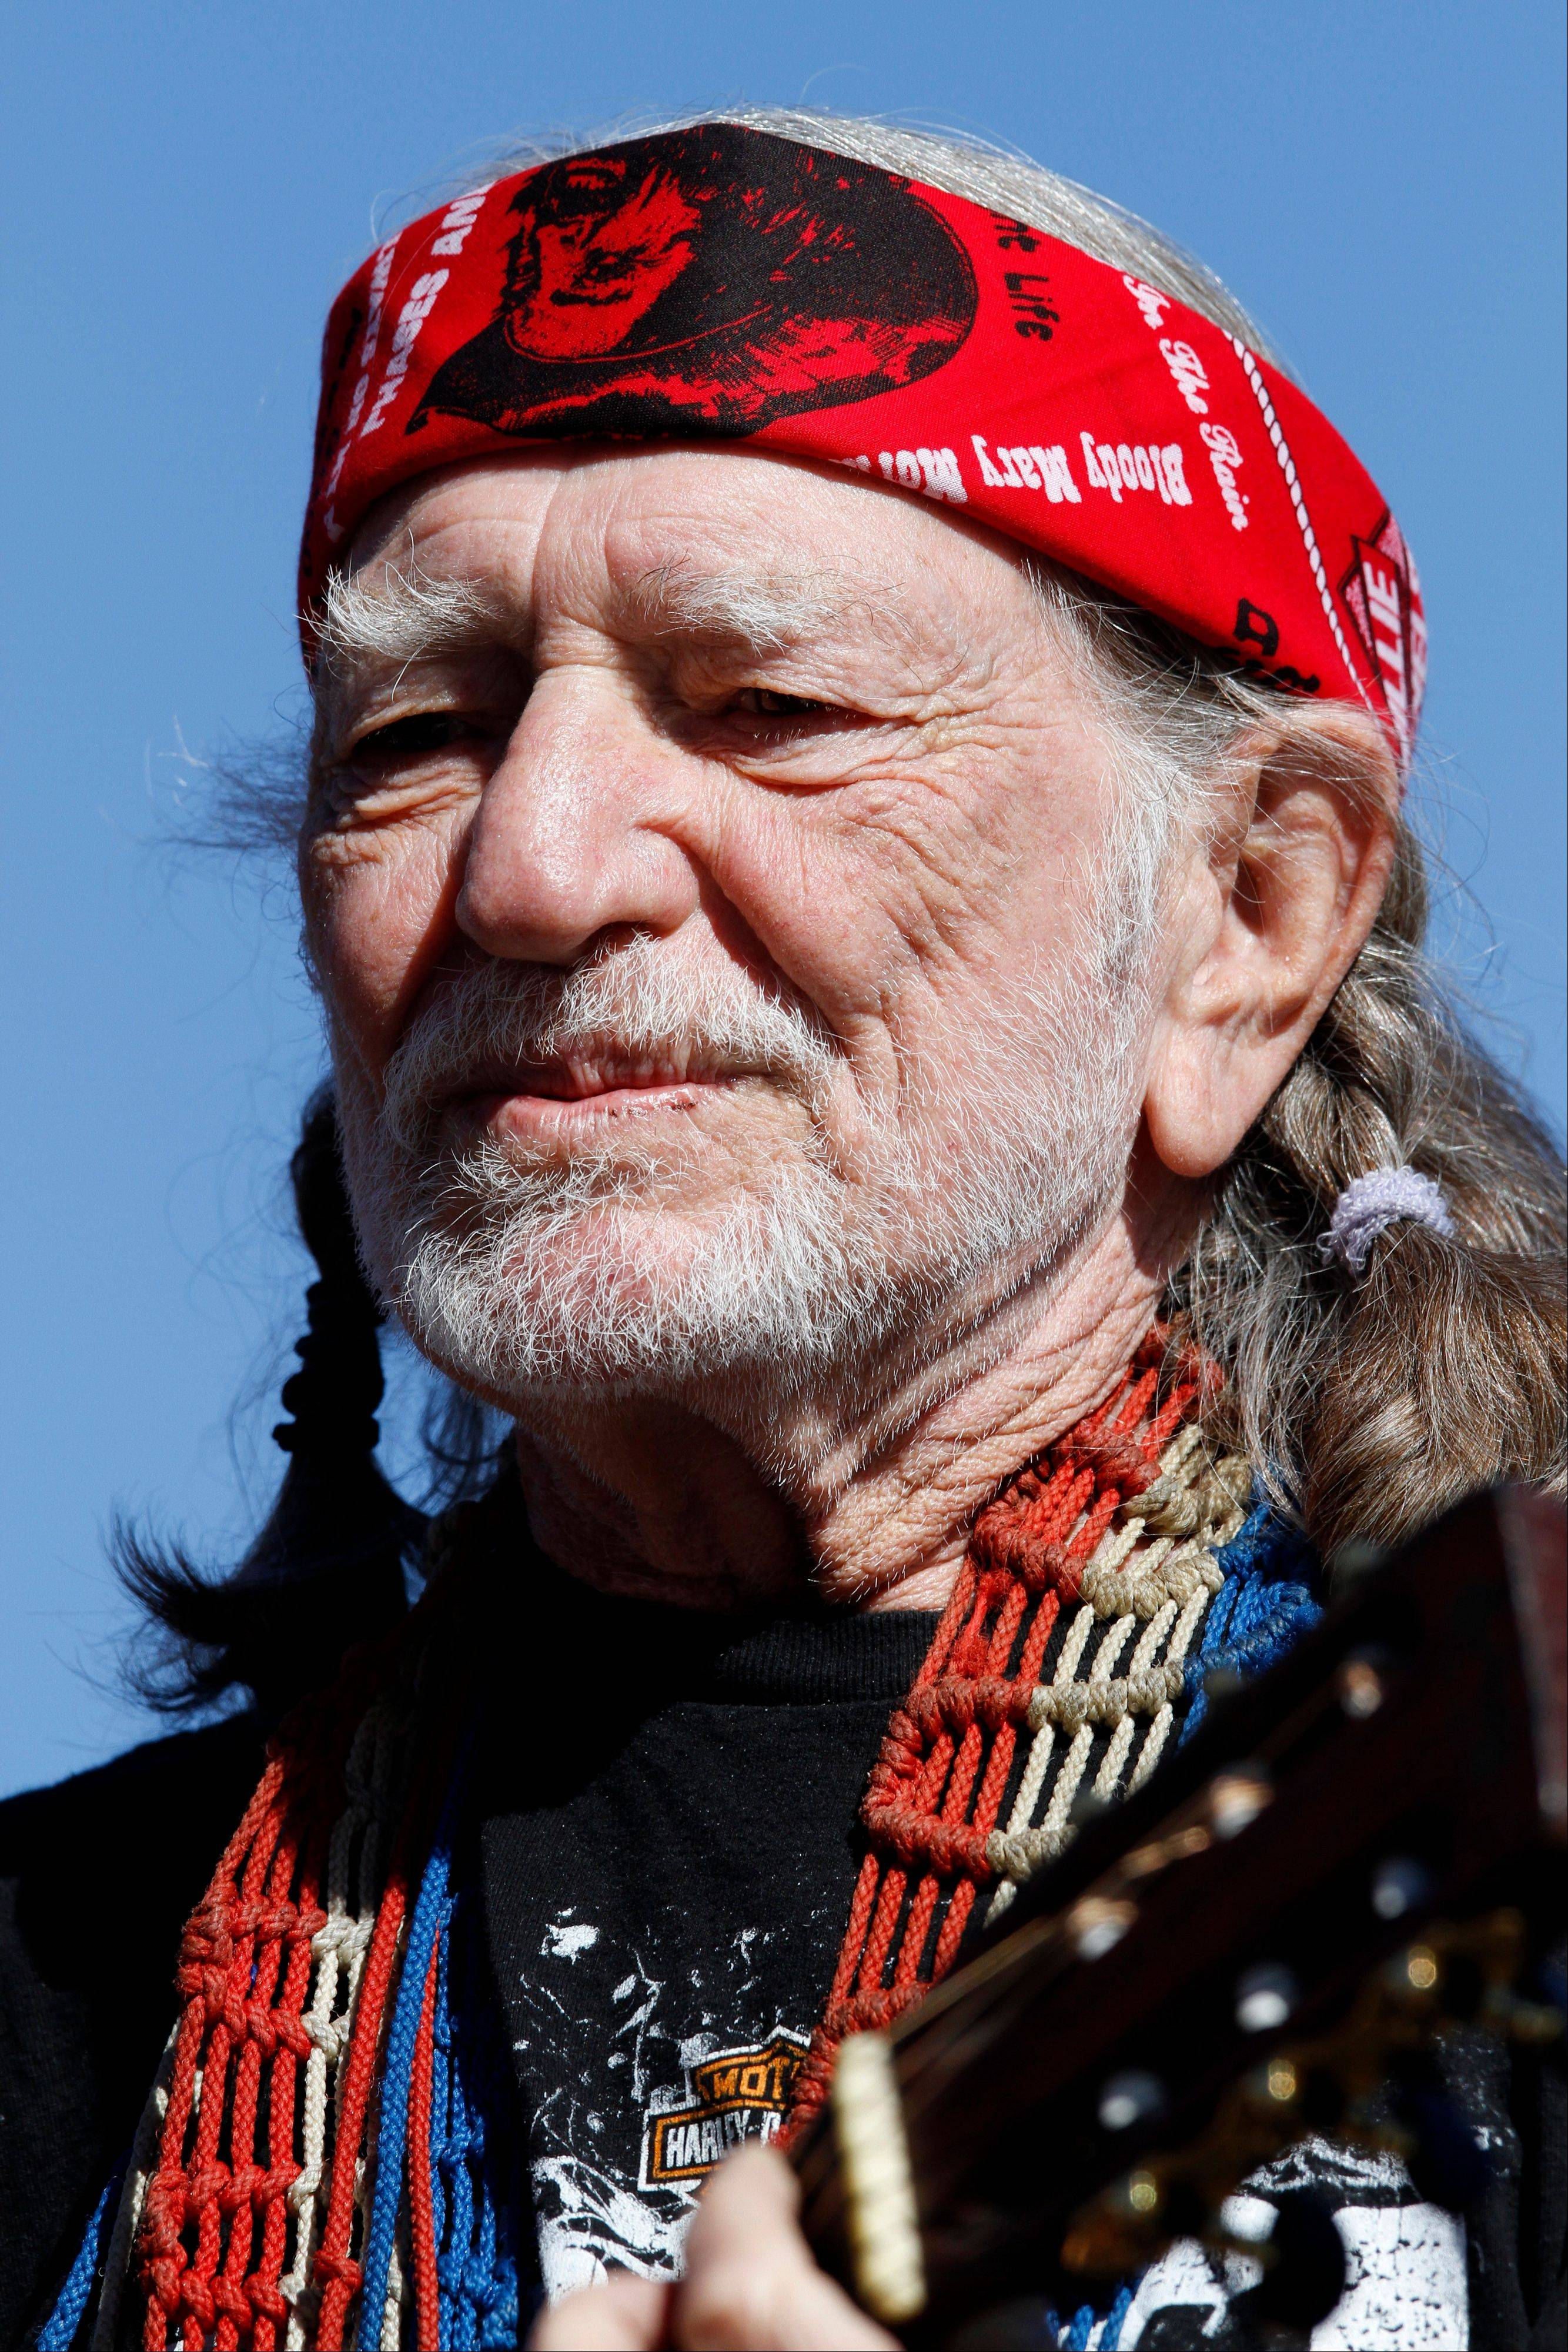 Willie Nelson is sending out his prayers via Twitter Thursday April 18, 2013 after a deadly fertilizer plant explosion rocked West, Texas, a small community north of Waco near where he grew up. He was born and grew up 120 miles north of the state capital, in tiny Abbott, which is about five miles north of West.